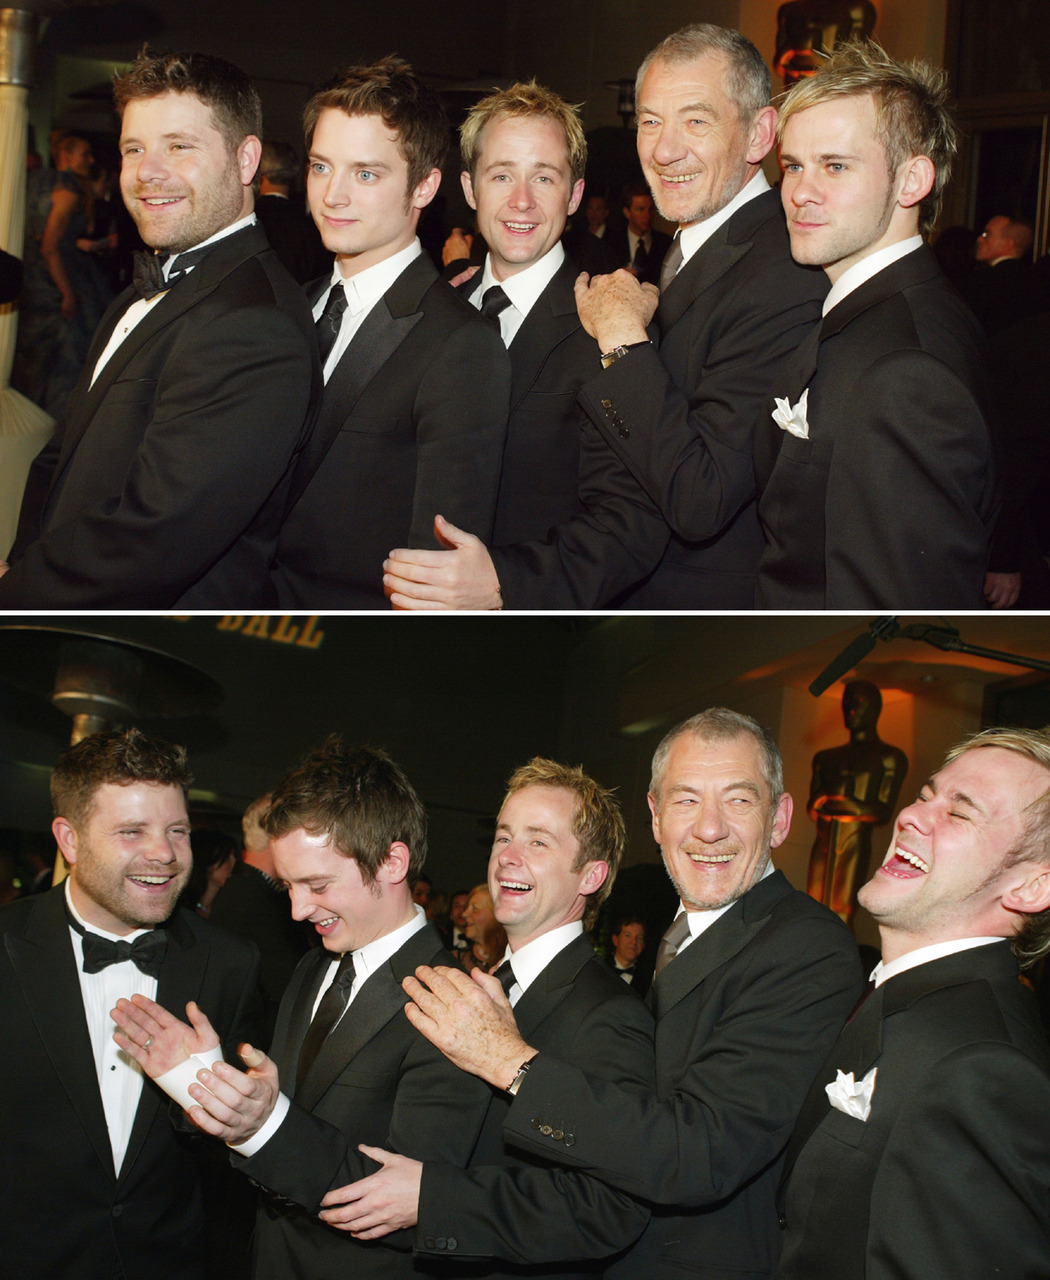 Sean Astin, Elijah Wood, Billy Boyd, Ian McKellen & Dominic Monaghan - Oscars, February 29th 2004 THIS OSCARS WAS LIKE A BEAUTIFUL DREAM I NEVER WANTED TO END.  GIVE PJACKS ALL THE AWARDS *SOB*